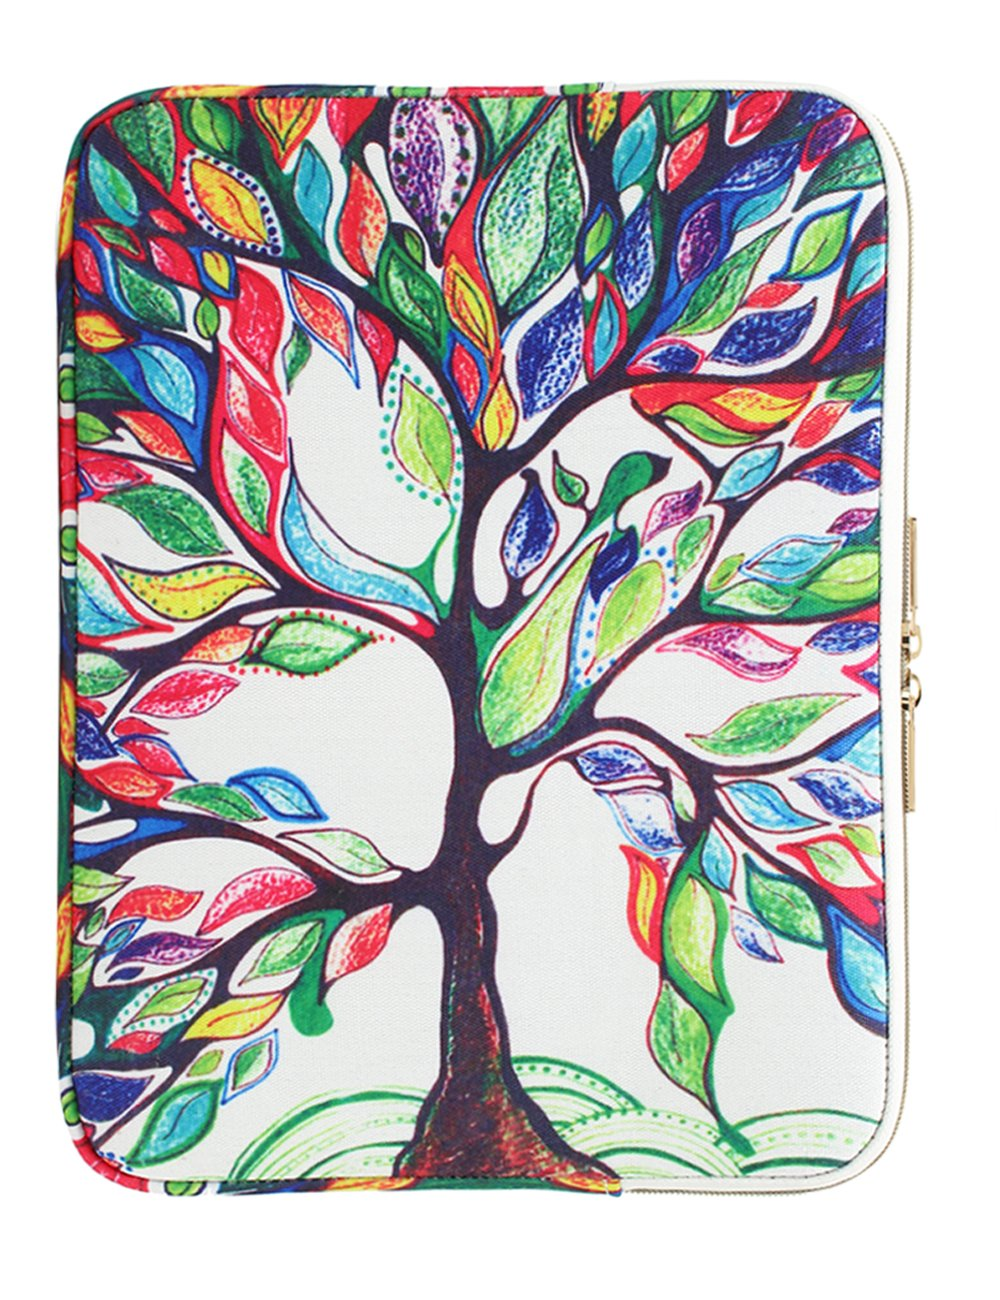 CoolBELL 15.6 Inch Laptop Sleeve Case Cover With Colorful Life Tree Pattern Ultrabook Sleeve Bag For Ultrabook like Macbook Pro/Macbook Air/Acer/Asus/Dell/Lenovo/Women/Men